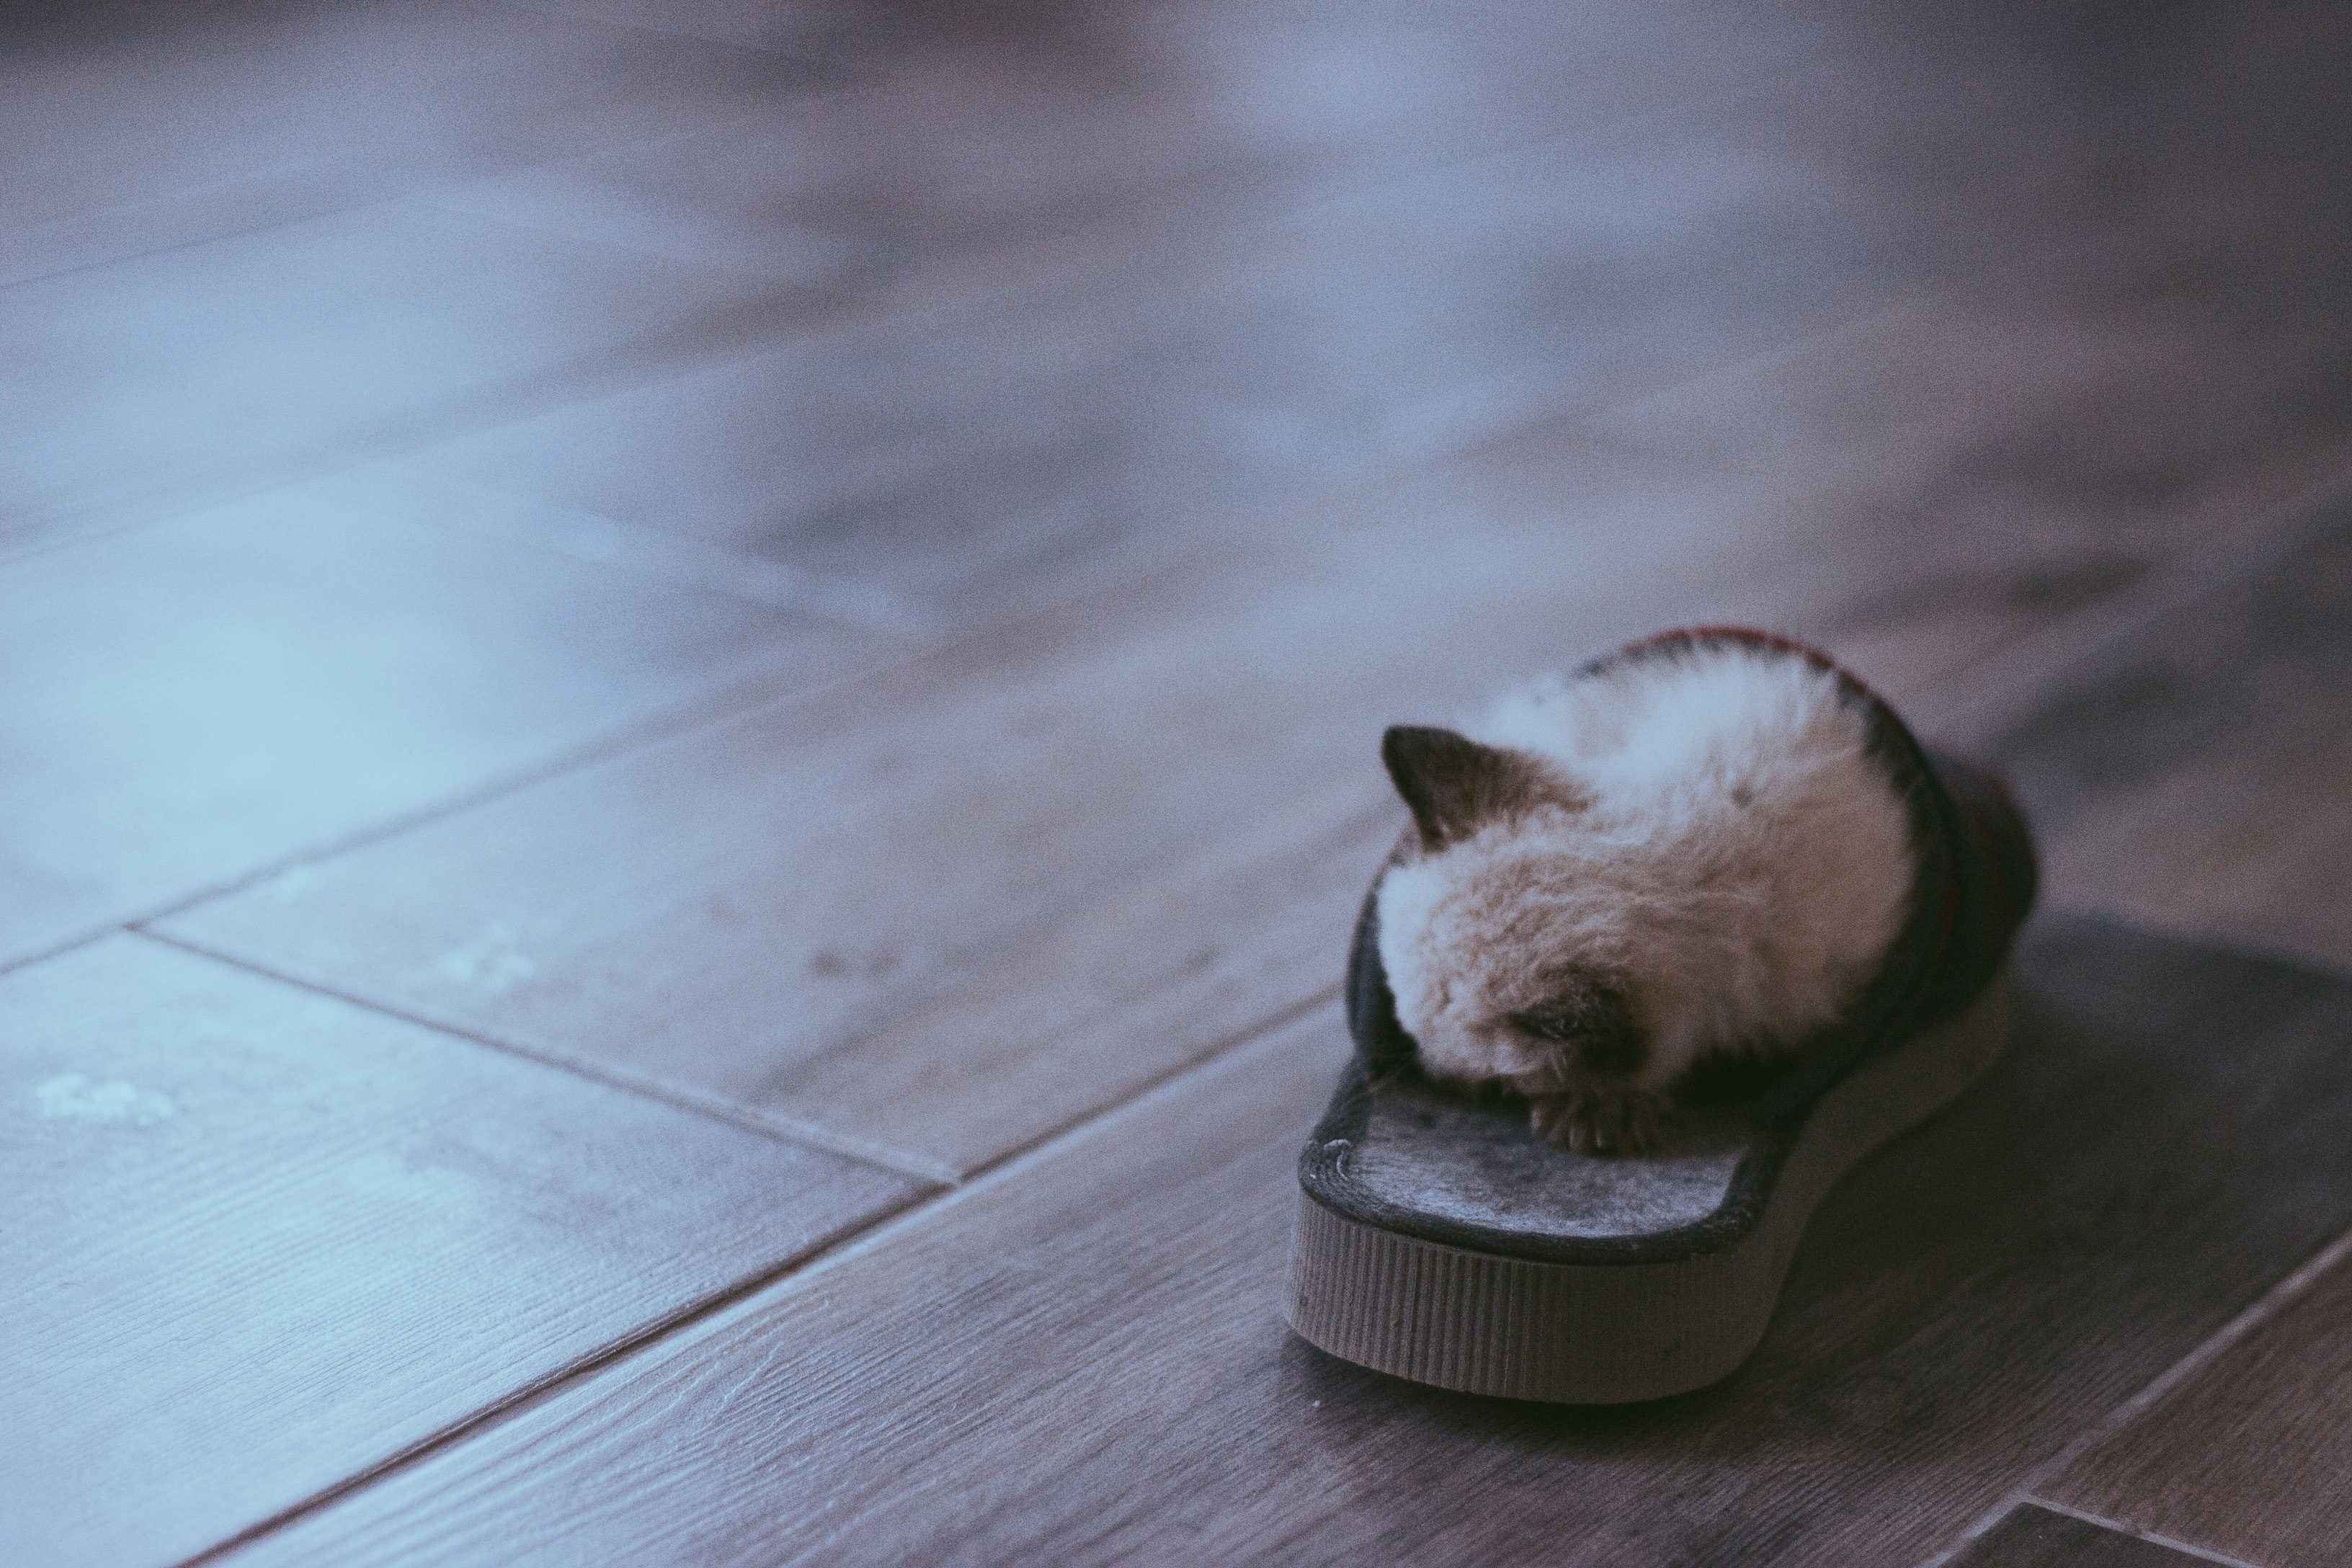 Kitten tucked inside a slipper on a wood floor